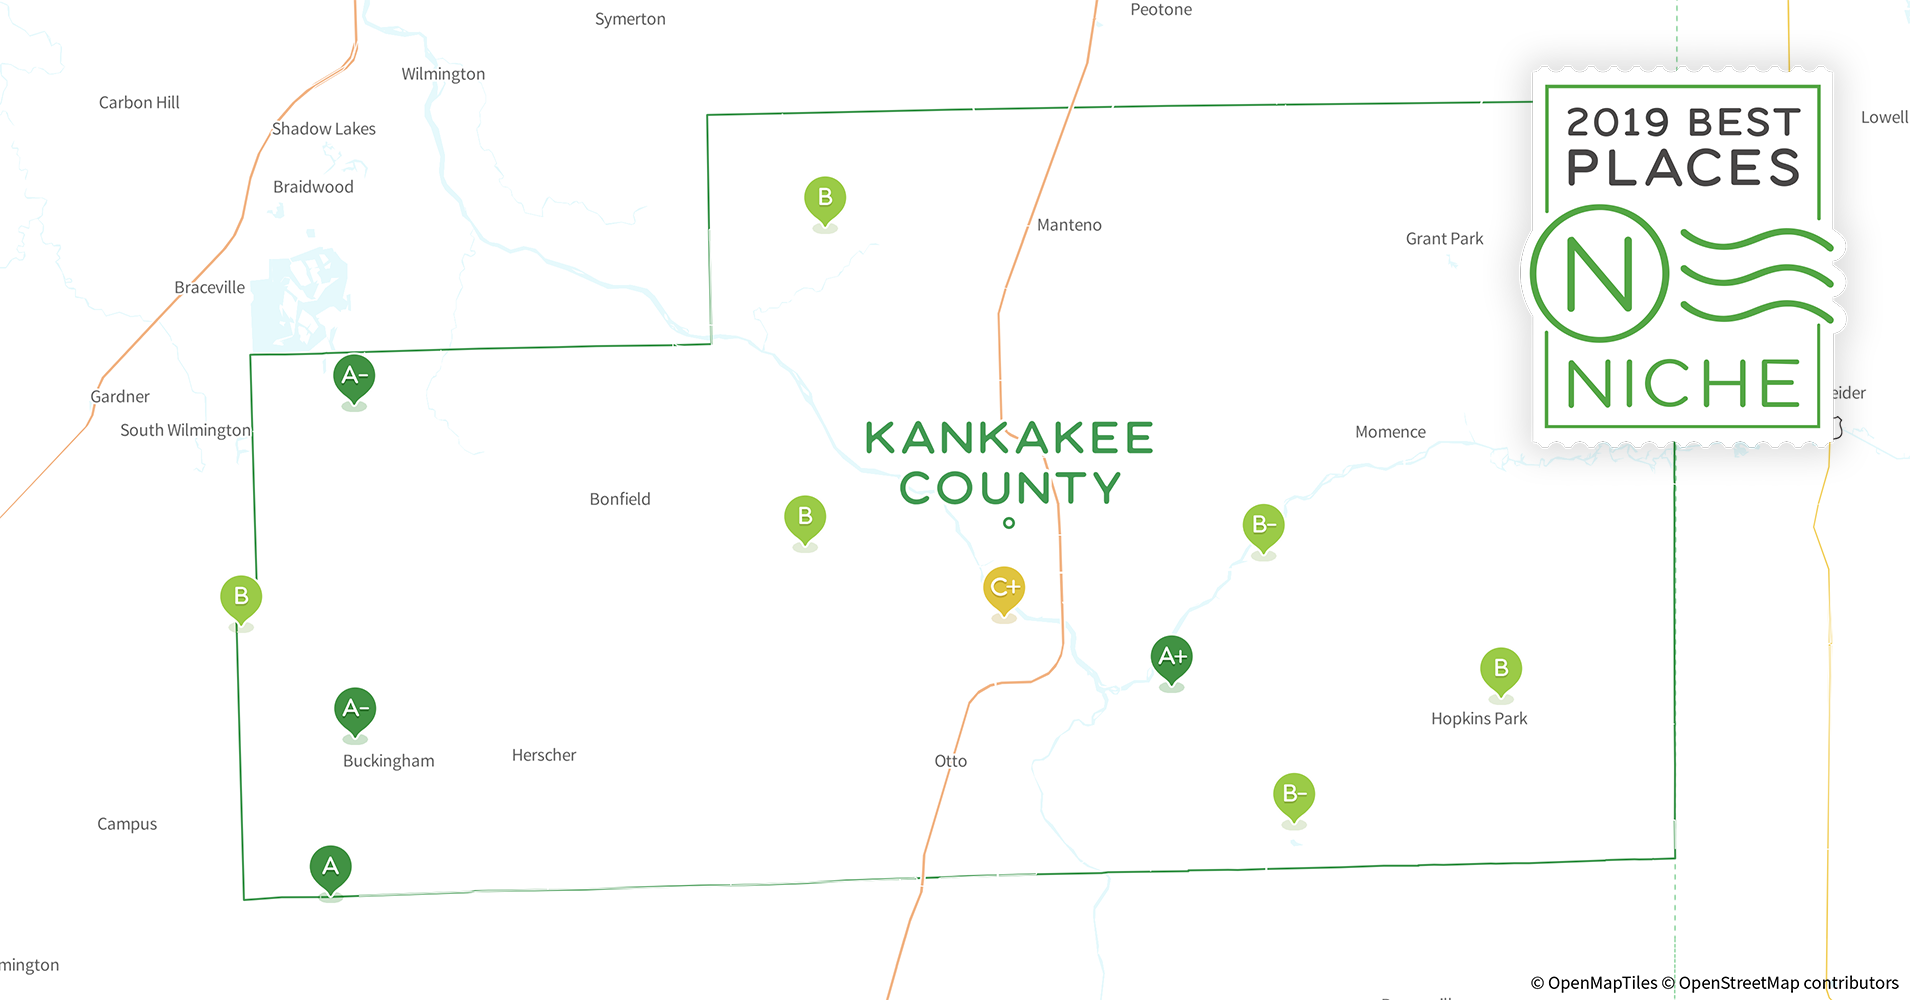 2019 Best Places to Live in Kankakee County, IL - Niche Kankakee County Map on grand rapids county map, boone county map, wheaton county map, lincoln county map, tinley park county map, wheeling county map, il county map, crenshaw county map, piatt county map, dayton county map, elk grove village county map, grundy county map, rockford county map, cincinnati county map, peoria county map, sioux city county map, brown county map, jefferson county map, wilmington county map, effingham county map,